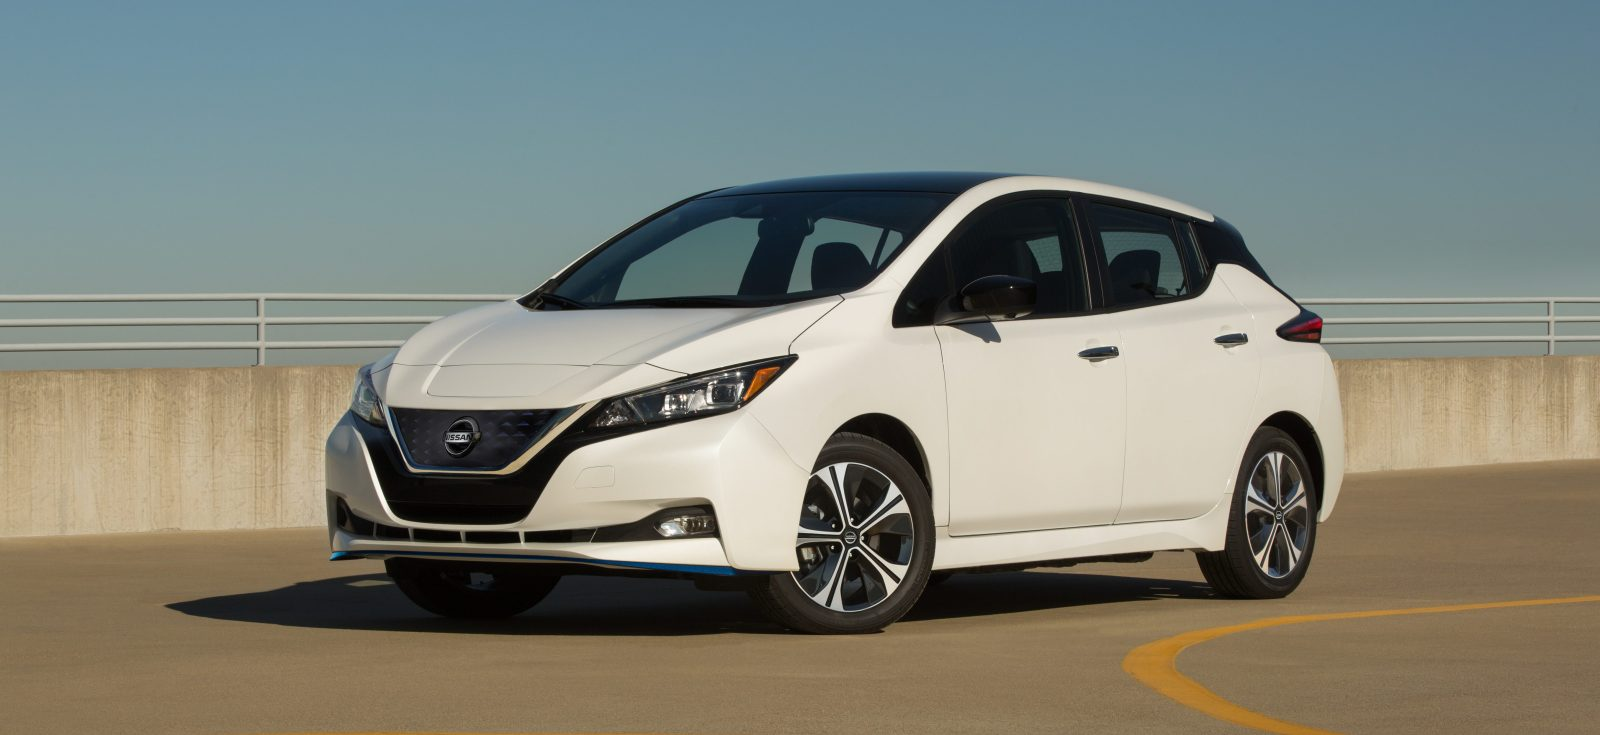 Nissan announces 2020 Leaf pricing; starts at $31,600 for 40 kWh, $38,200 for 62 kWh